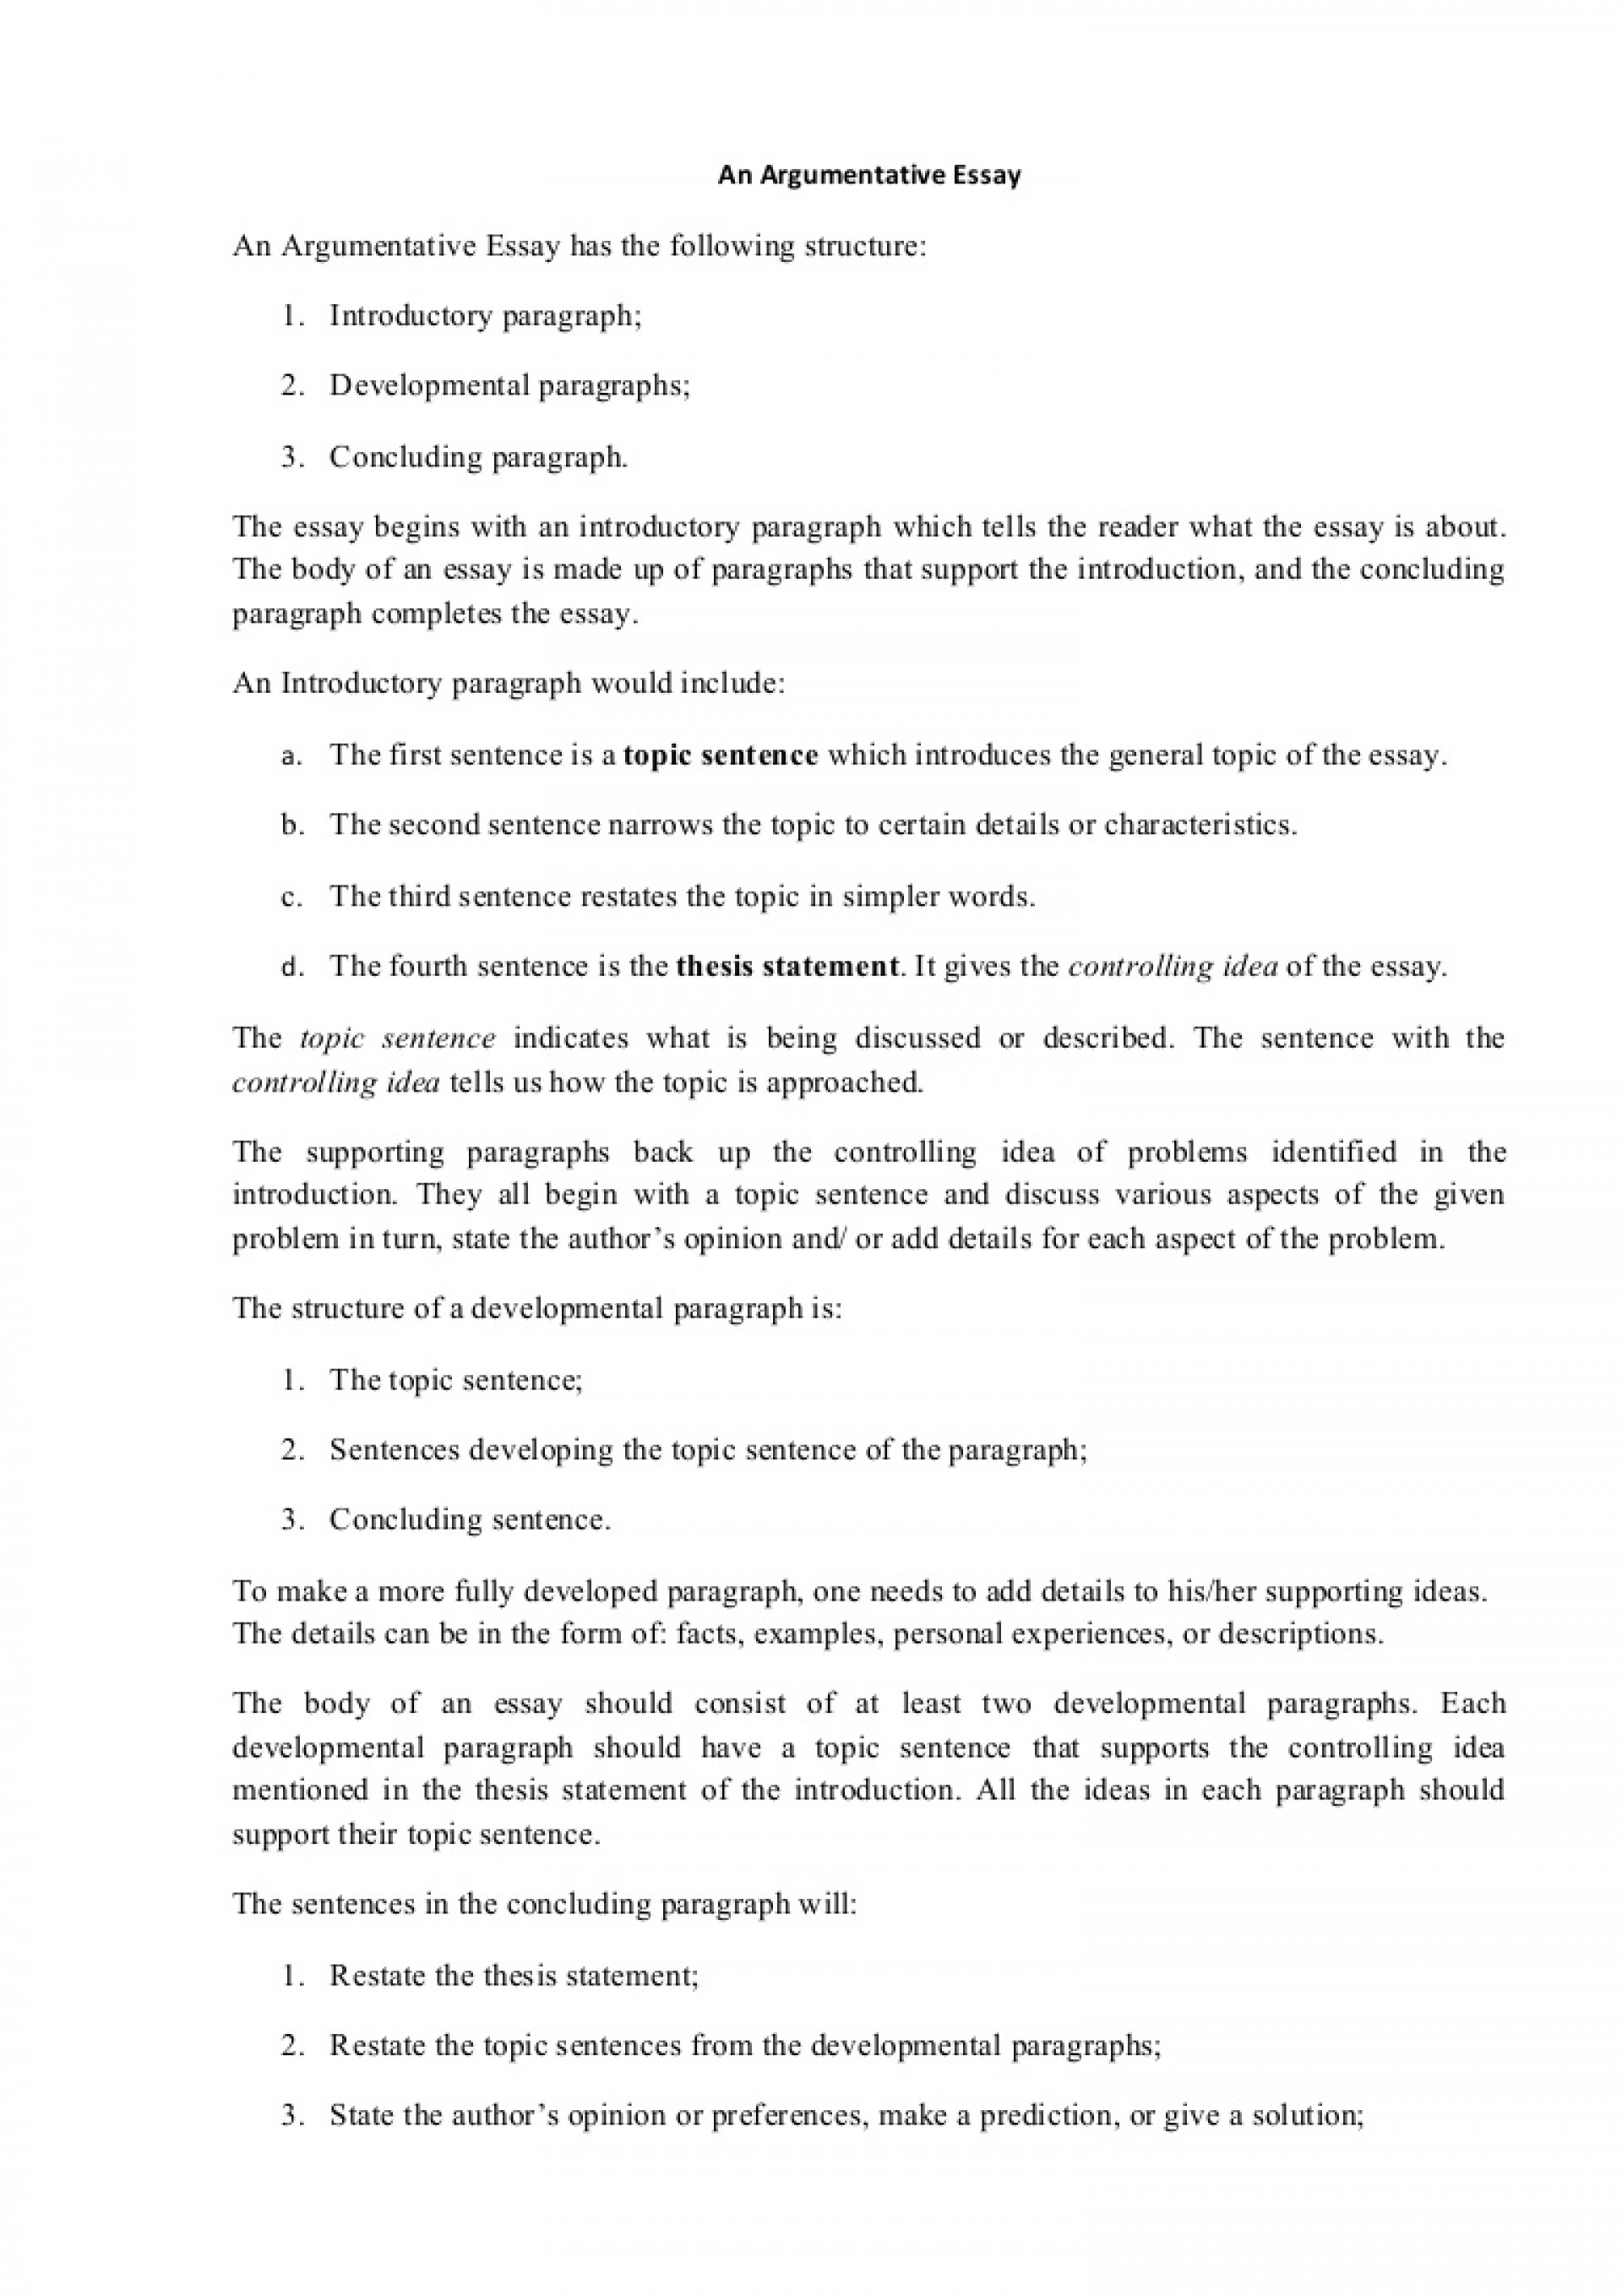 016 Essay Example How To Conclude An Argumentative Argumentativeessaystructure Phpapp01 Thumbnail Top Teach Me Write A Good Conclusion Paragraph For Step By Ppt Middle School 1920